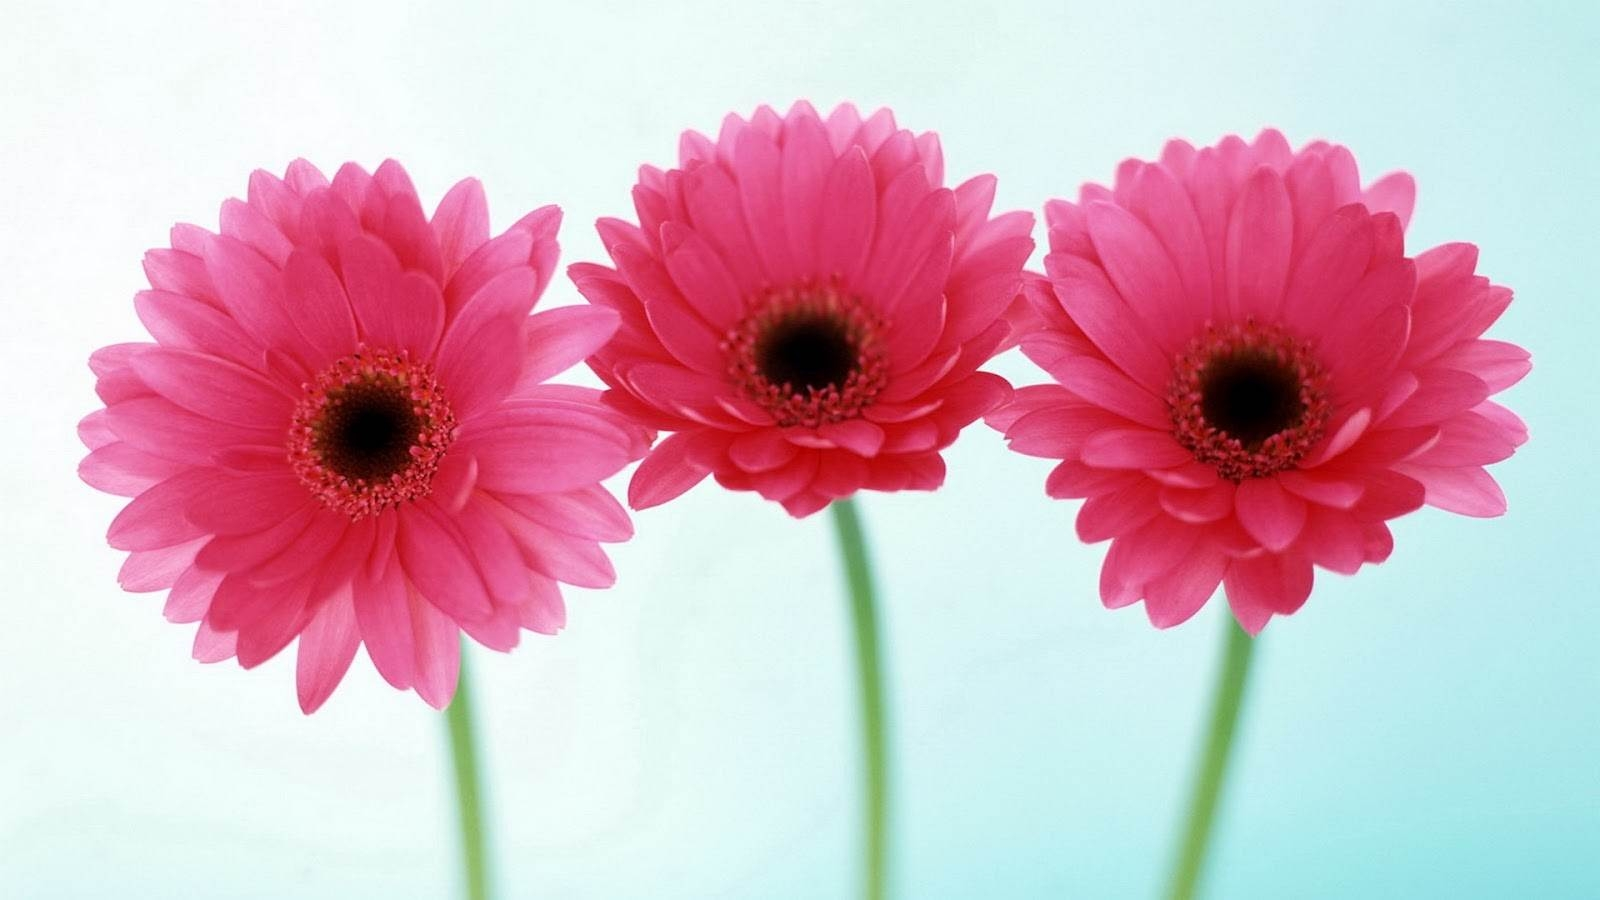 Pink Flowers Wallpaper Amazon Walls HD Wallpapers Backgrounds p 1600x900